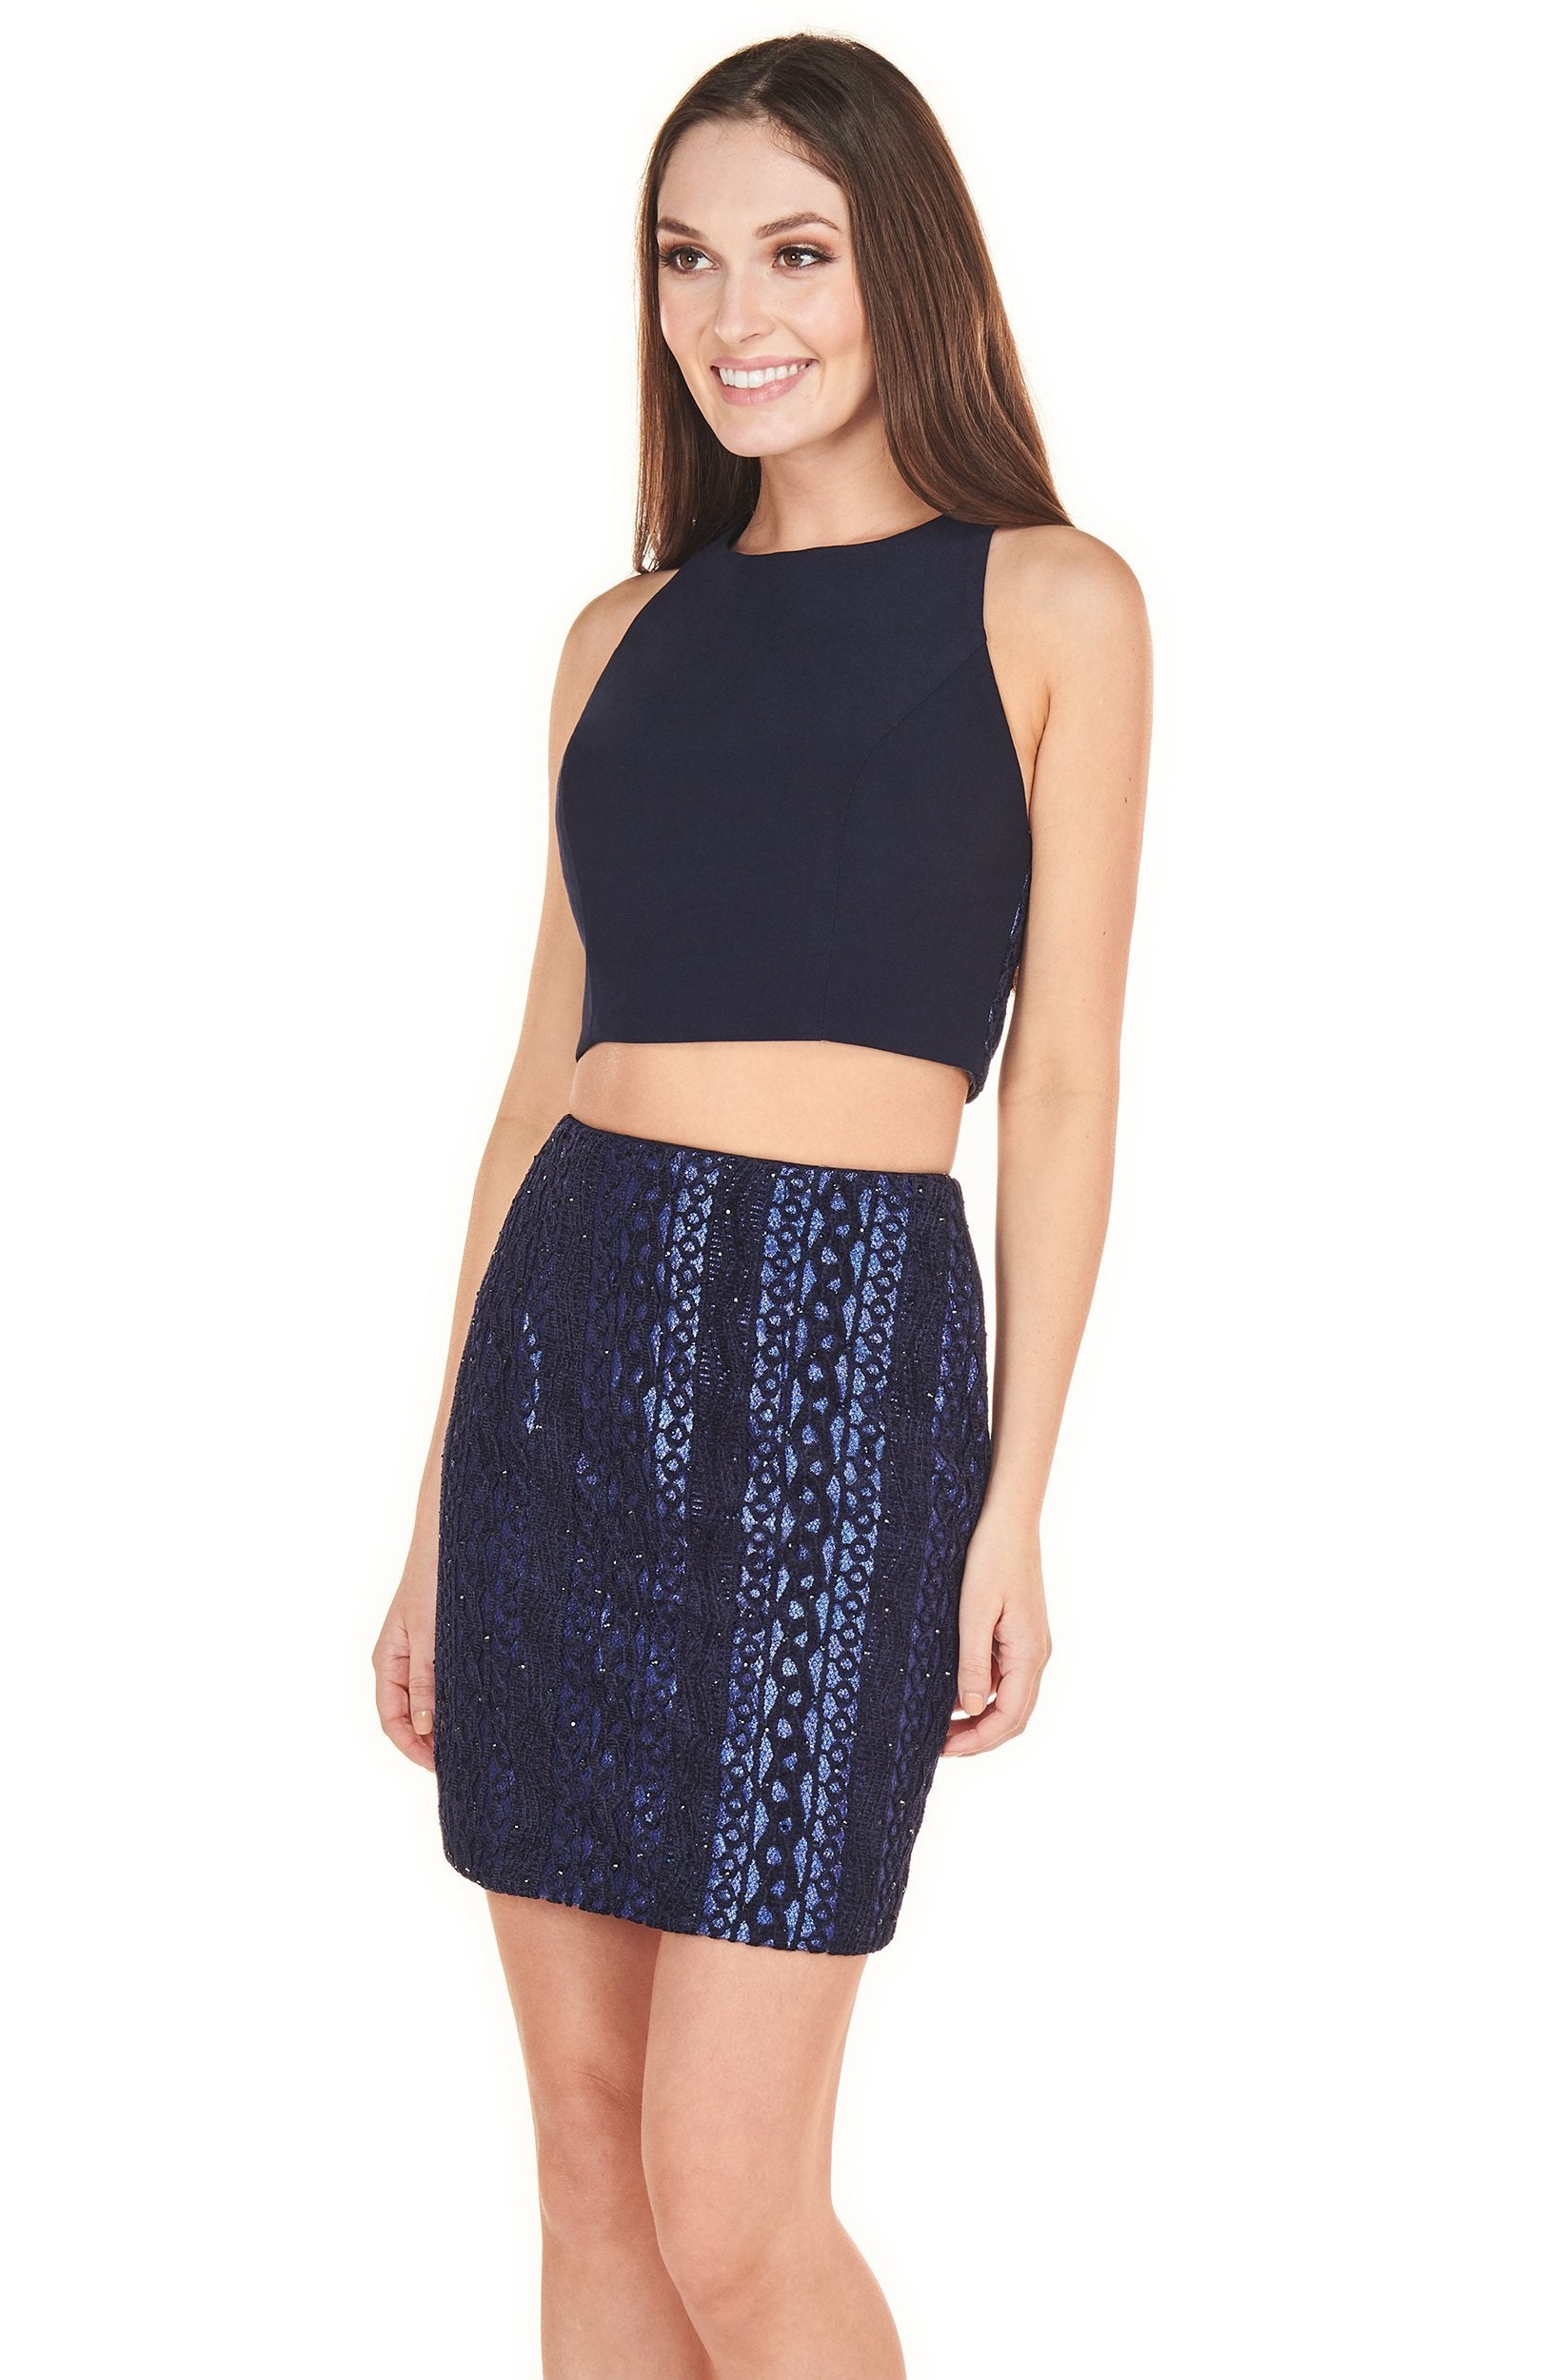 Rachel Allan Shorts - 4118 Two-Piece Jewel Short Sheath Dress In Blue